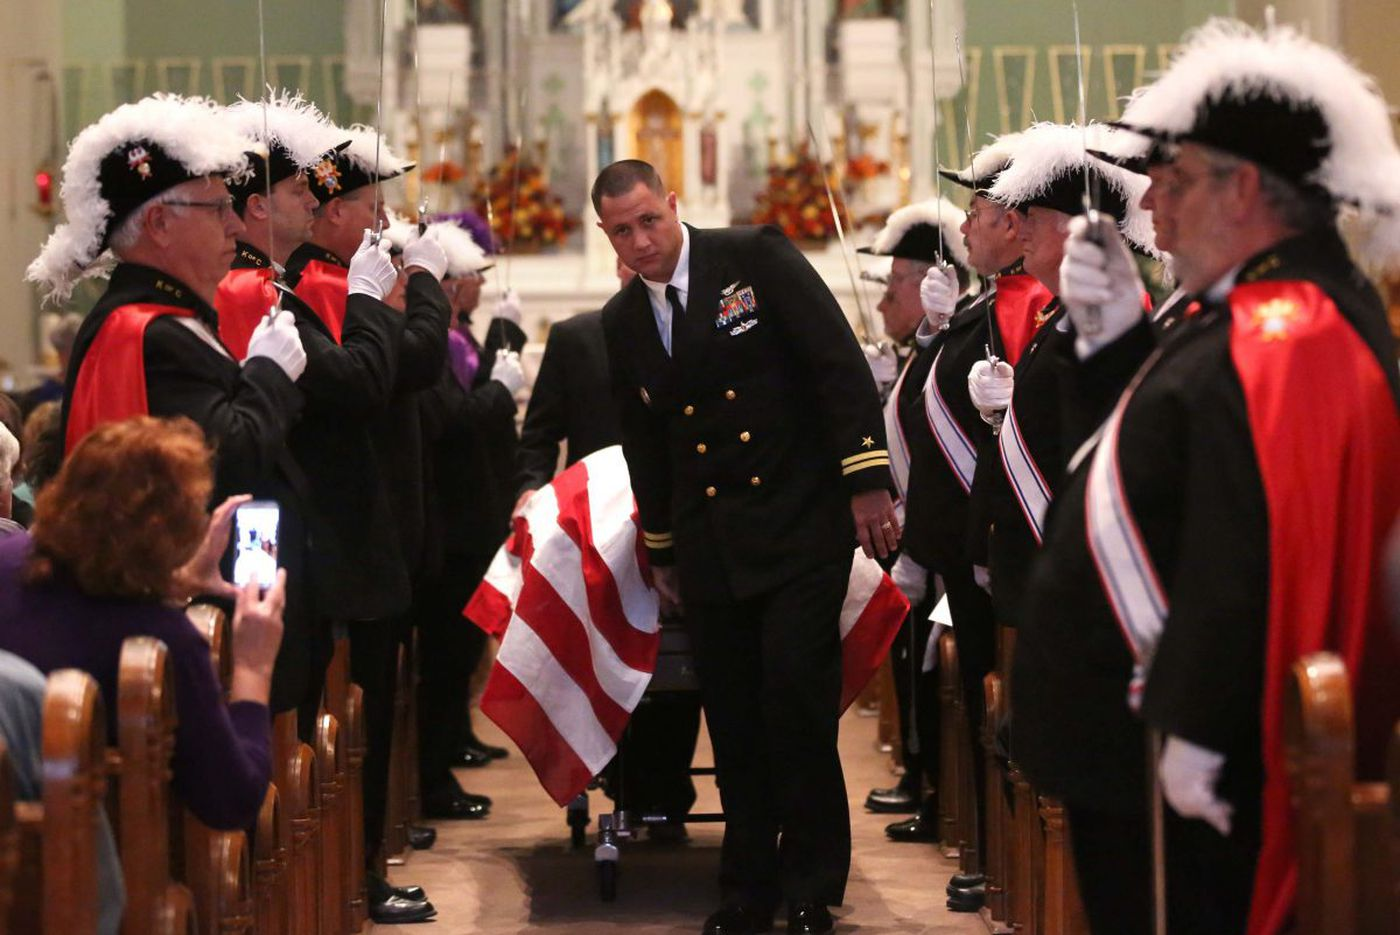 76 years after he died at Pearl Harbor, a chaplain will get a combat medal